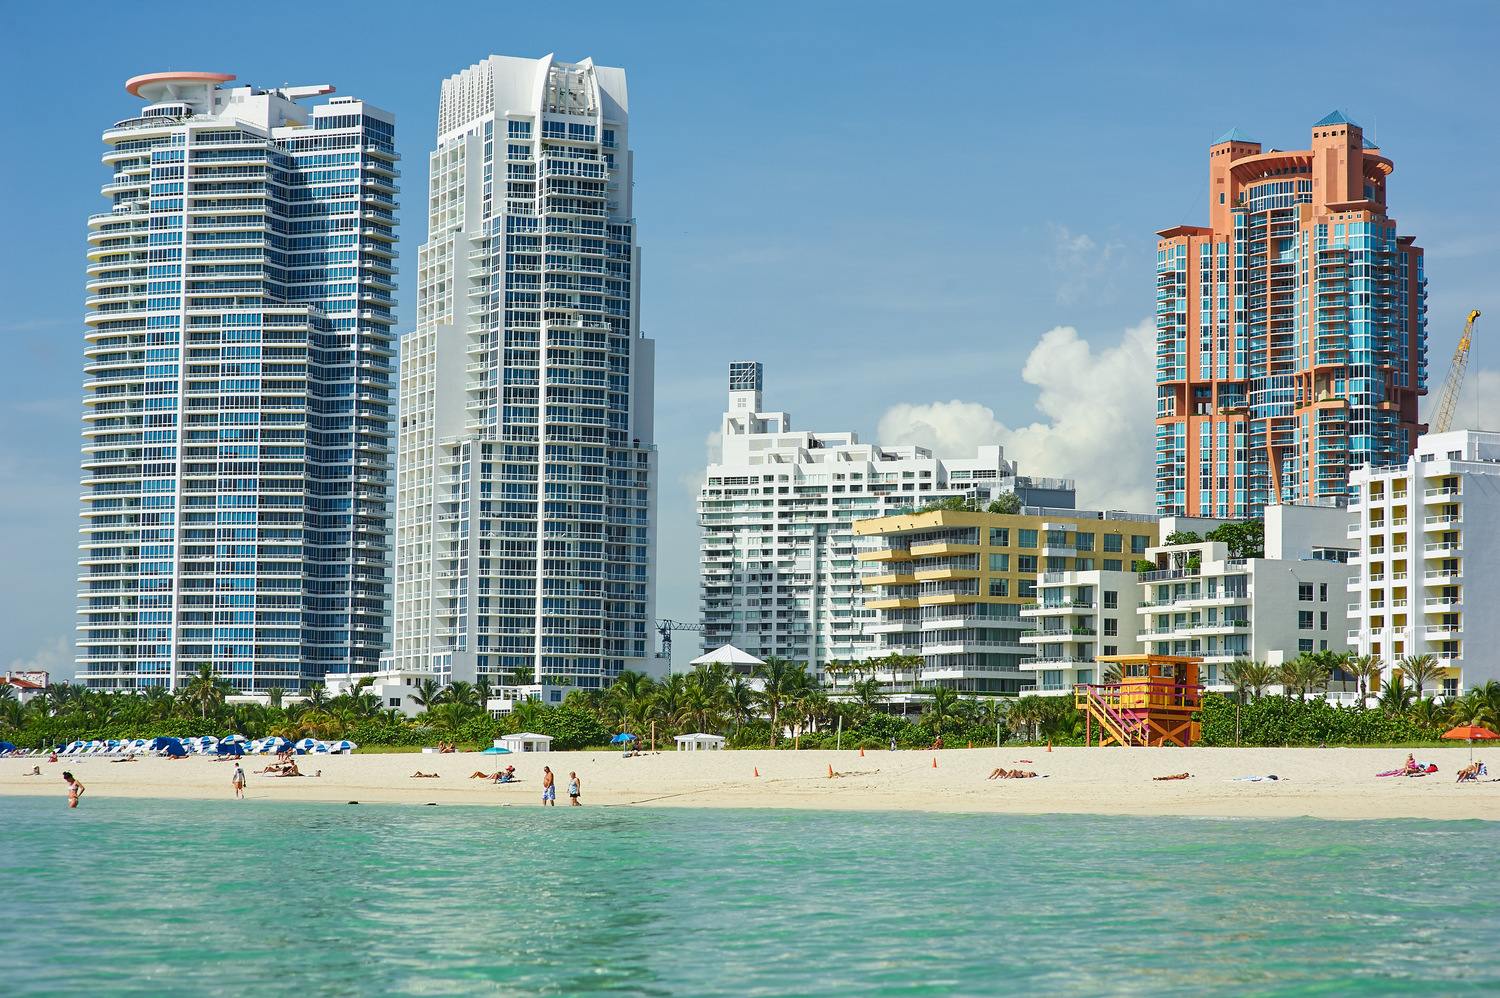 BUSINESS BROKER OF MIAMI COURTIER D'ENTREPRISES A MIAMI ACHAT COMMERCE MIAMI INVESTIR MIAMI 2.jpg